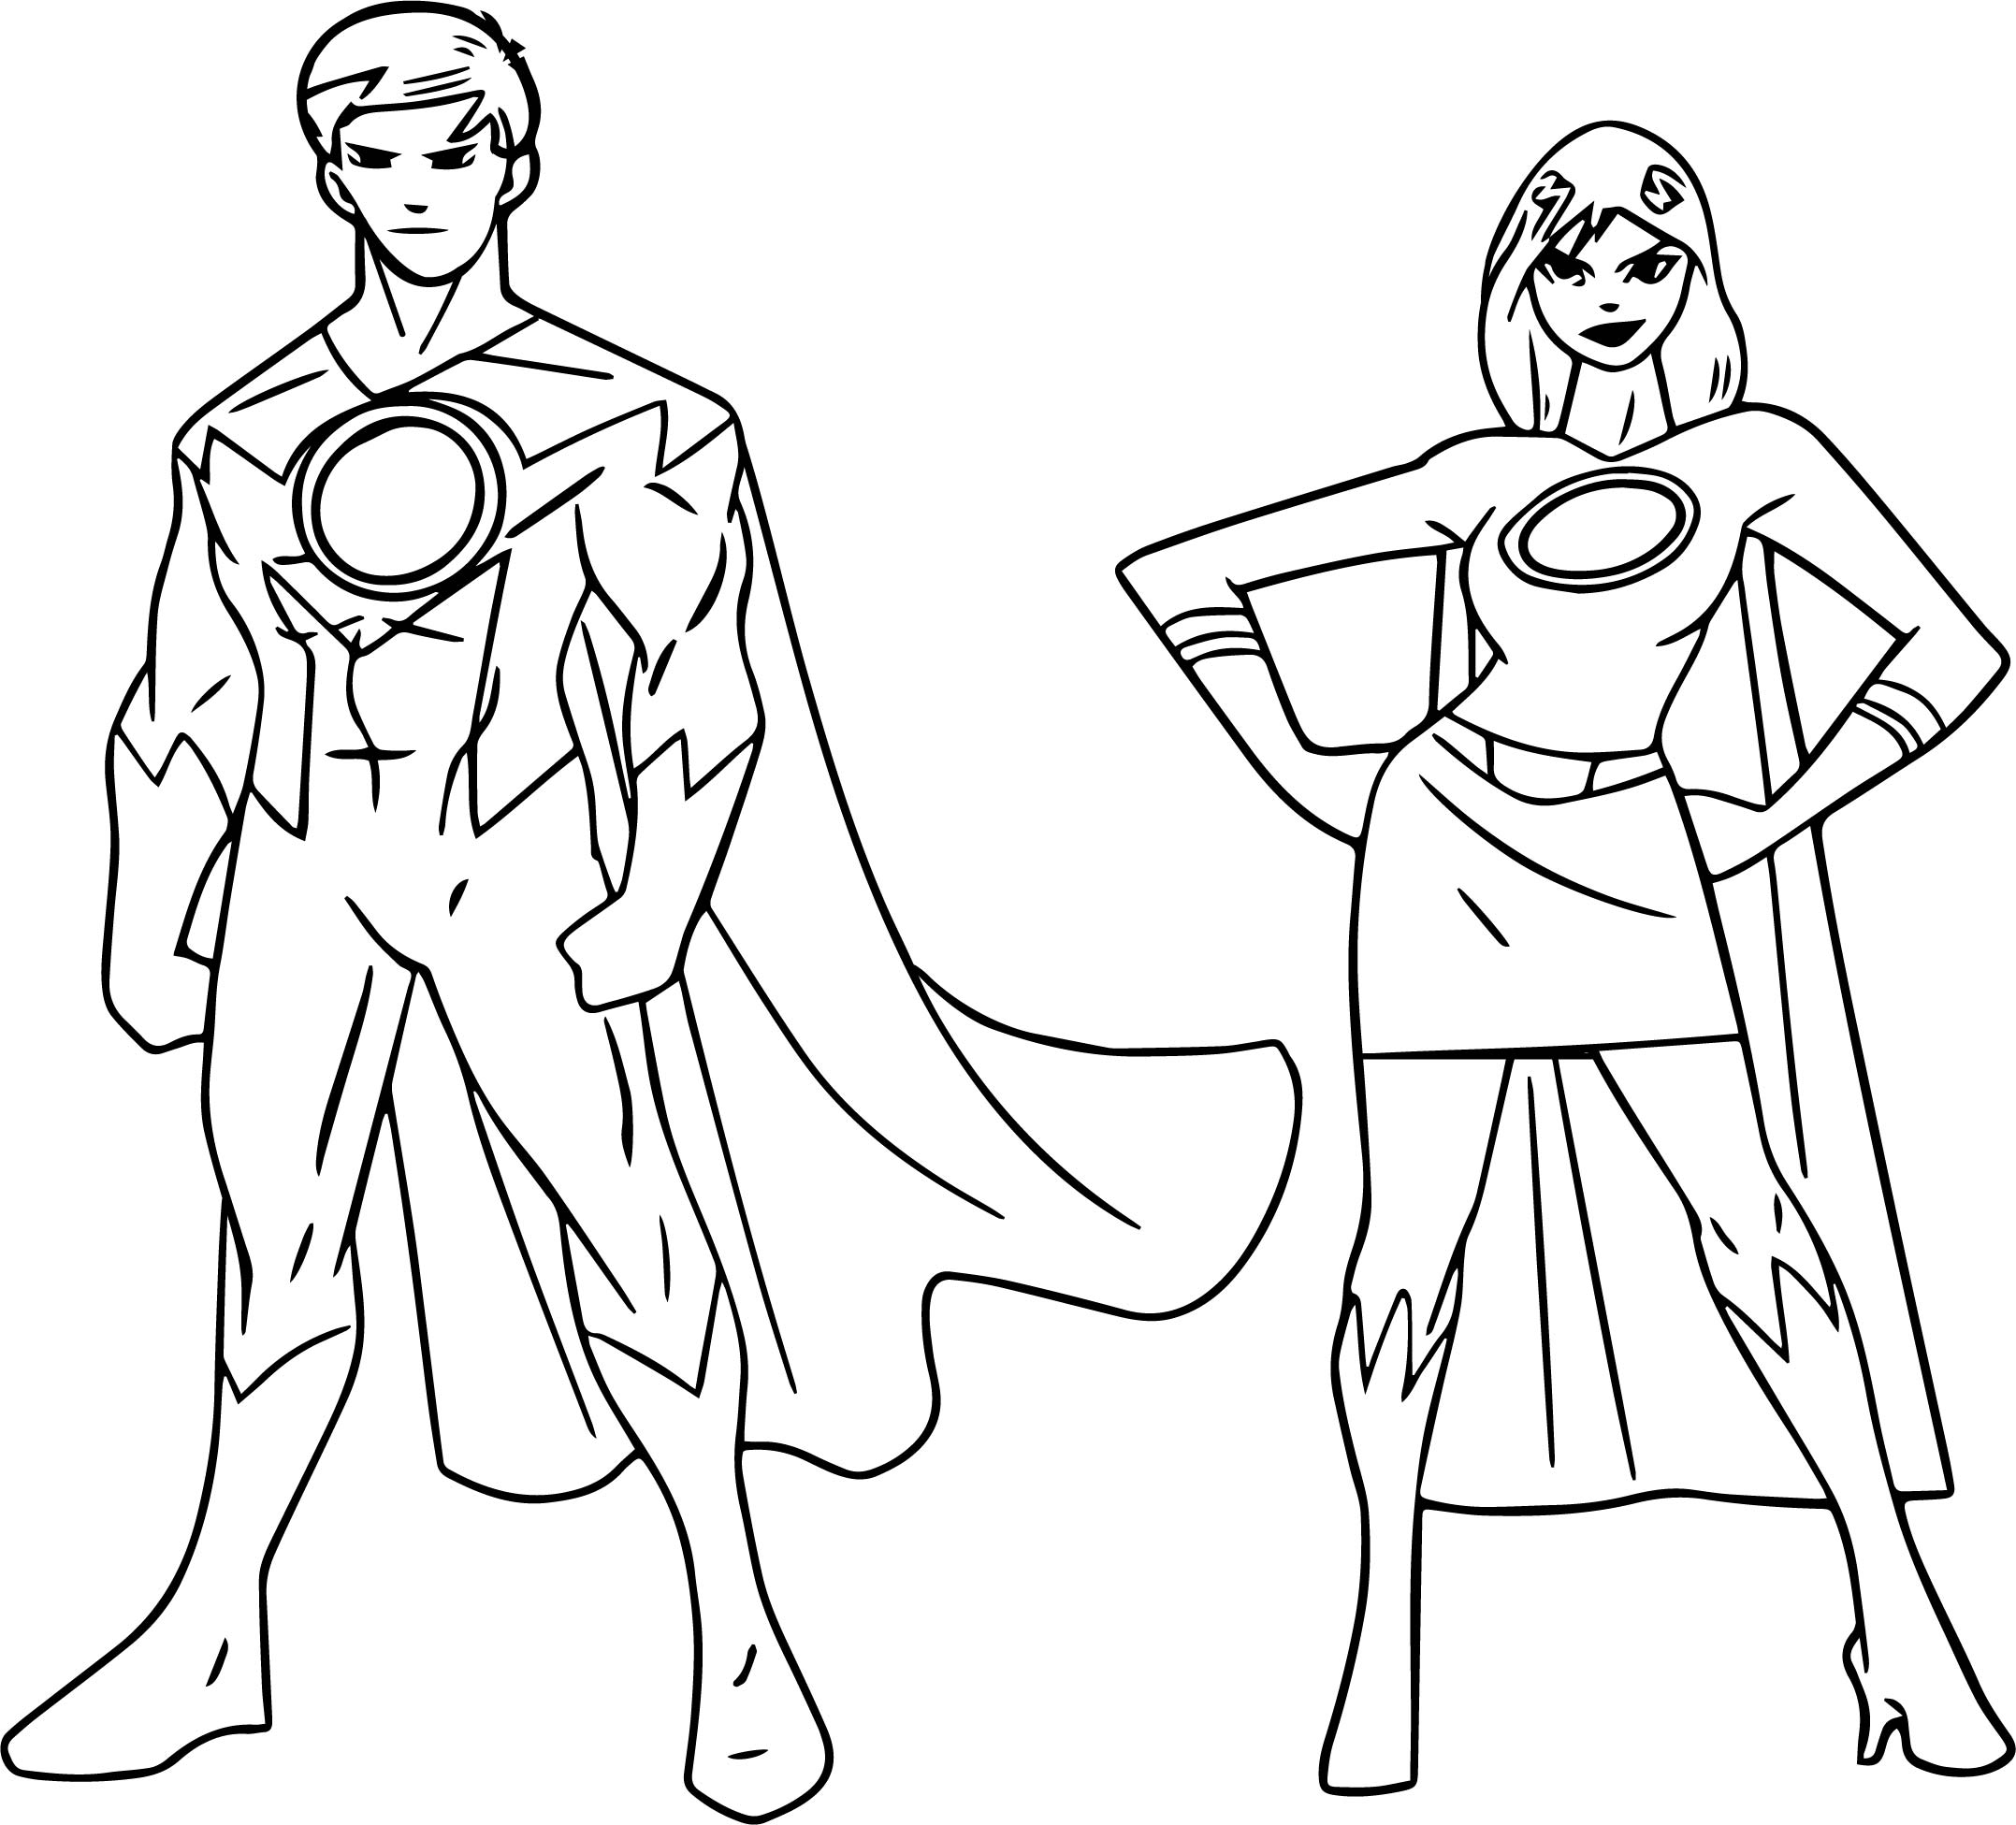 Superhero coloring pages boys for Boys color pages